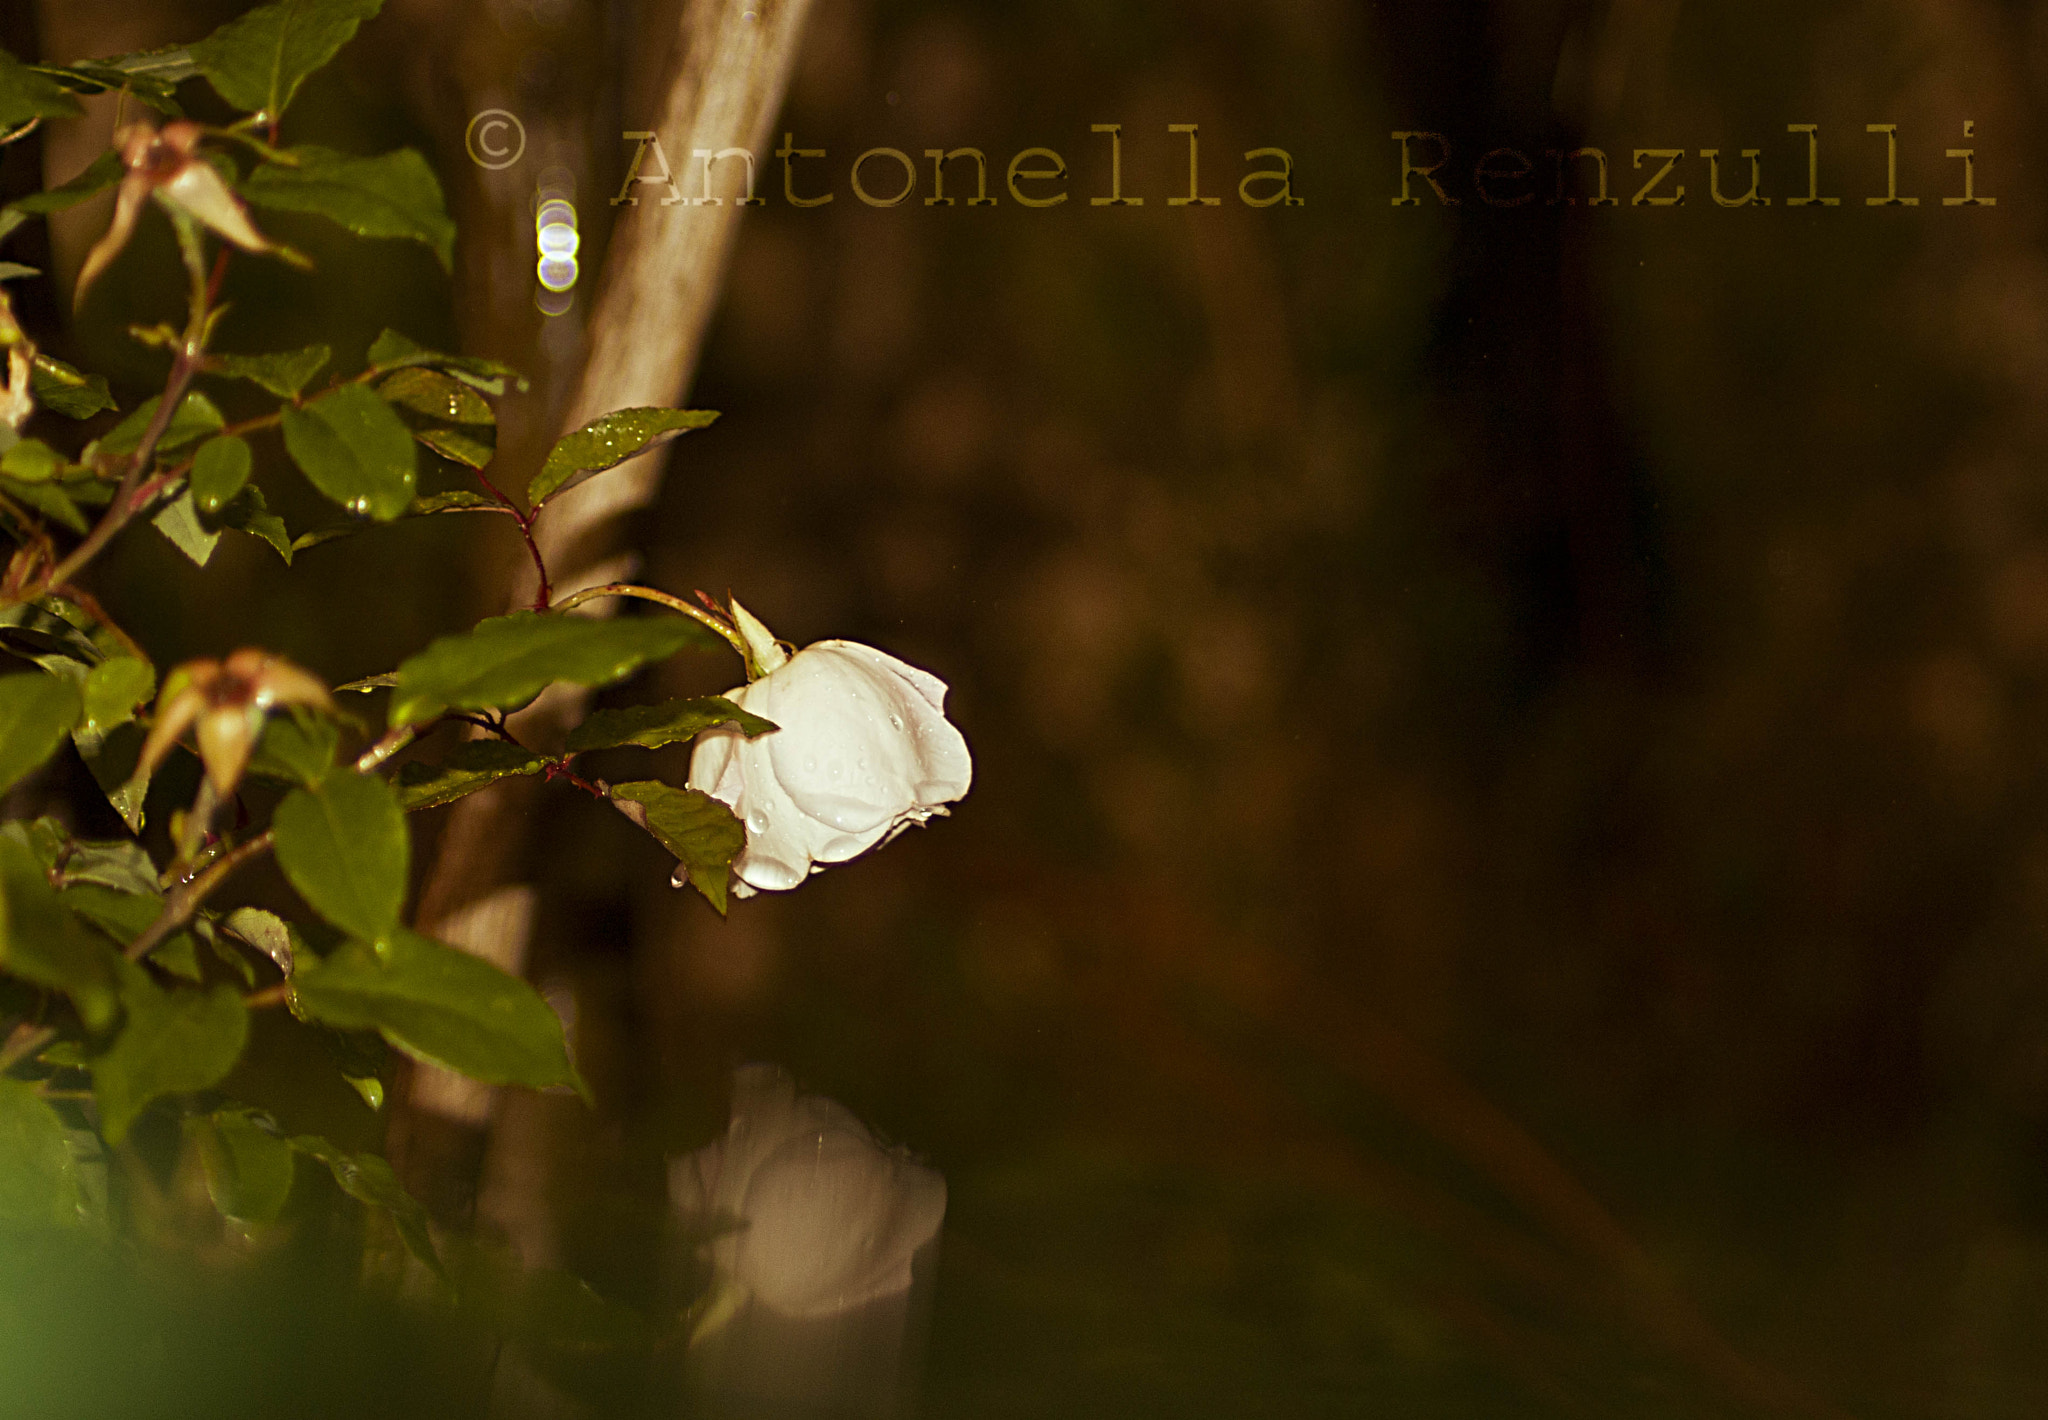 Photograph Narcissus rose by Antonella Renzulli on 500px